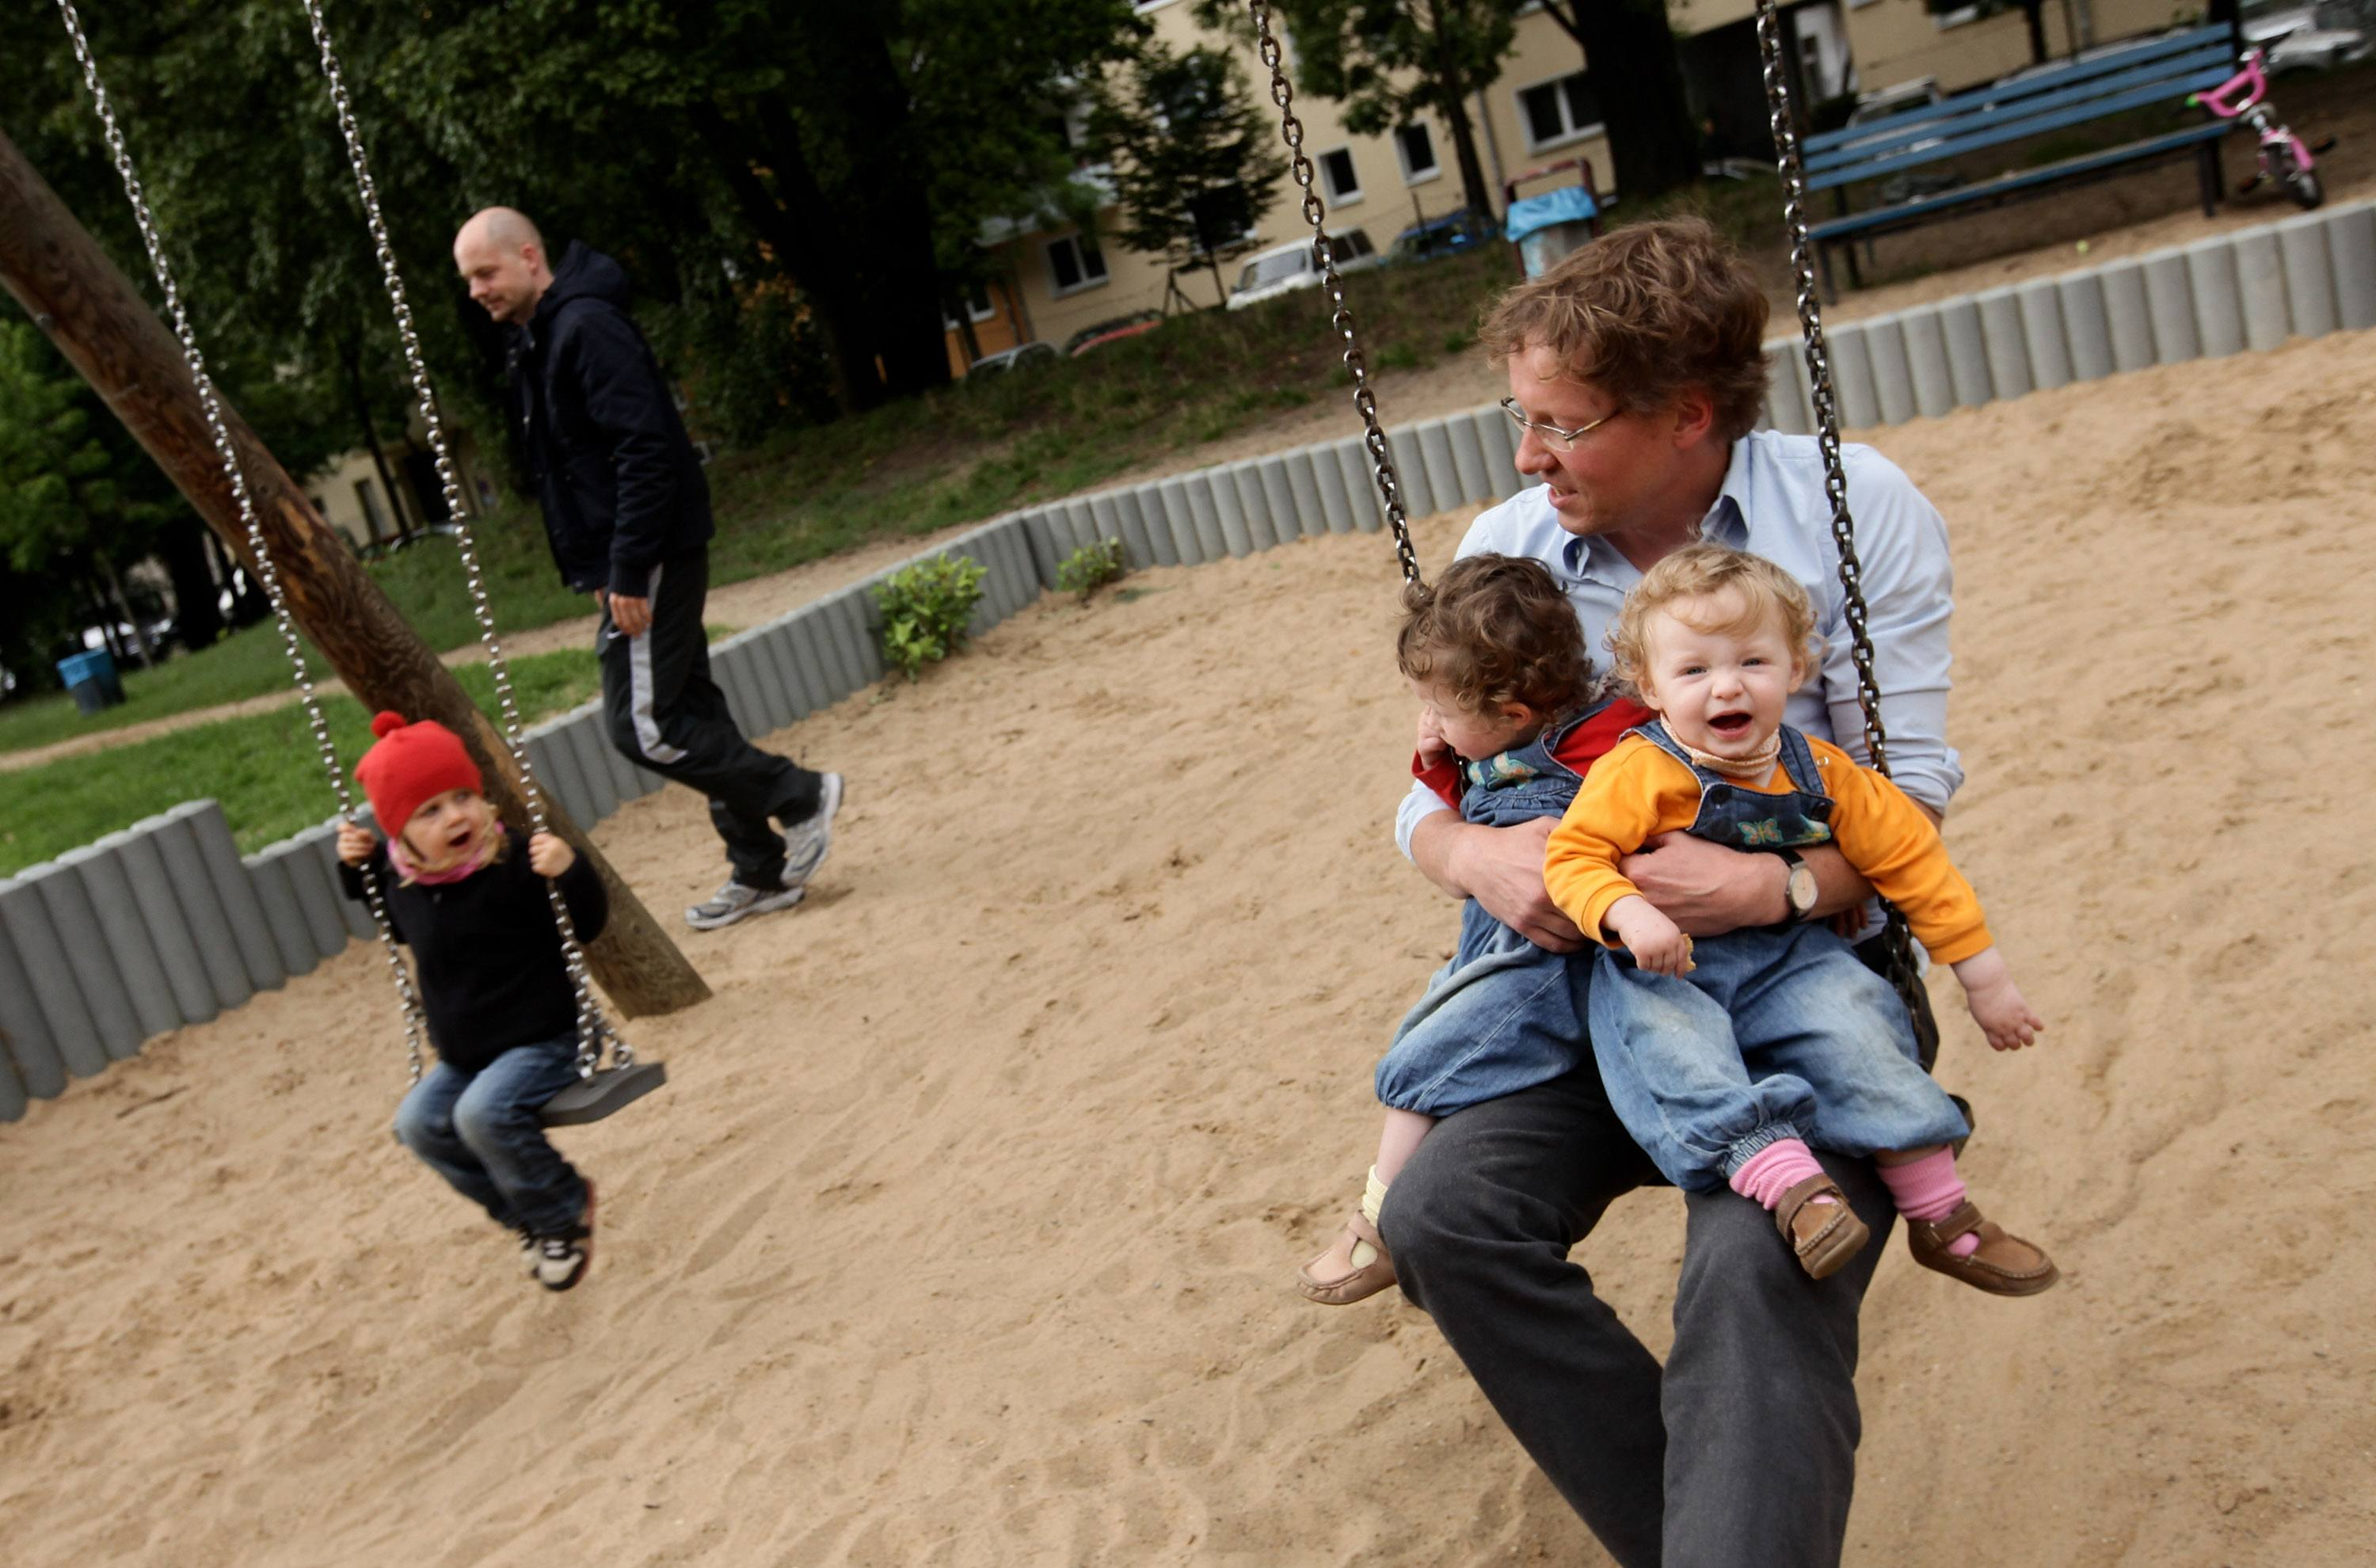 A German man spends time with his kids